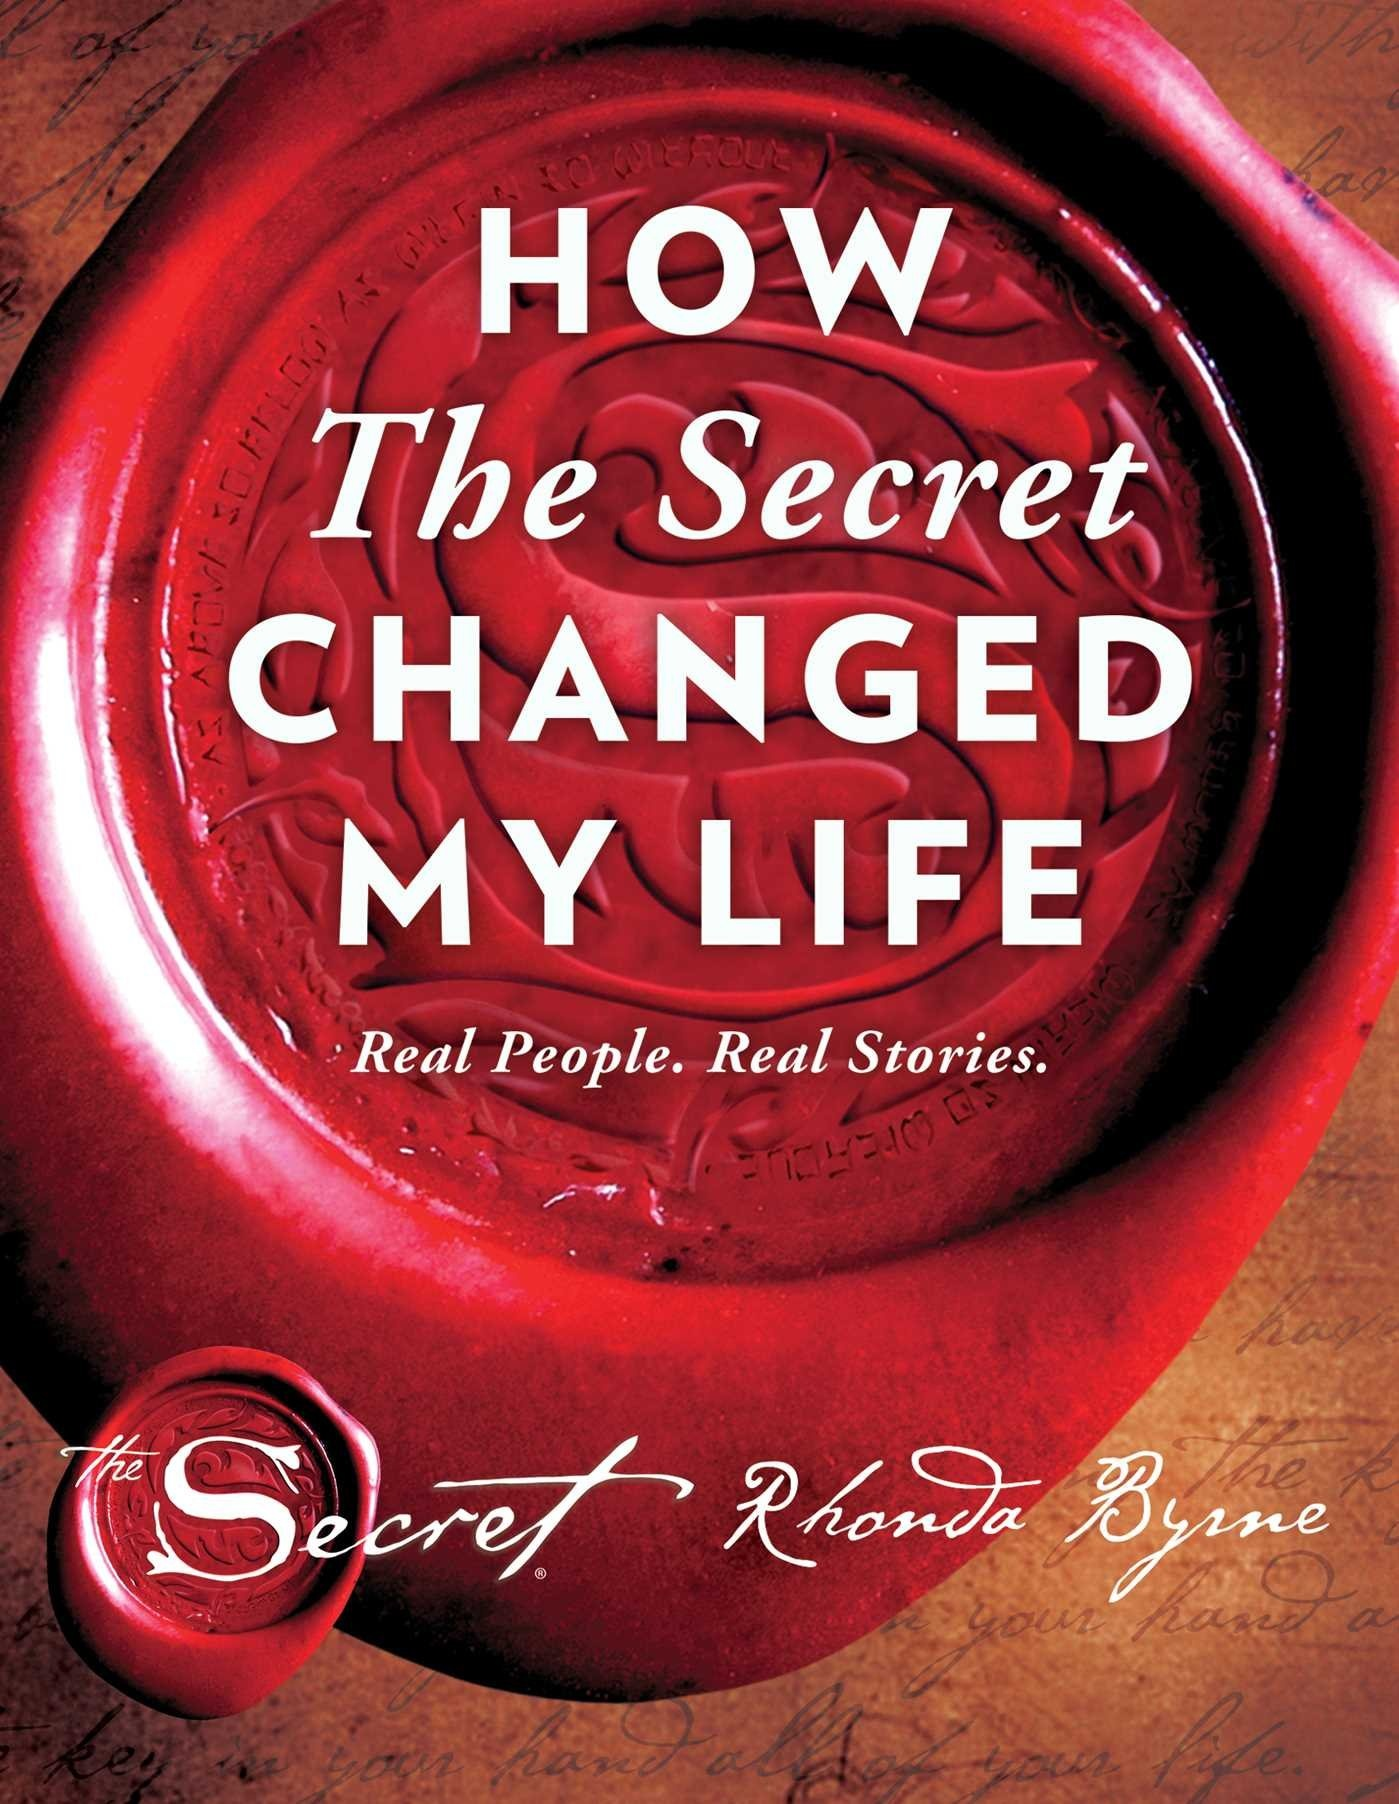 Heroe Libro Rhonda Byrne How The Secret Changed My Life Real People Real Stories